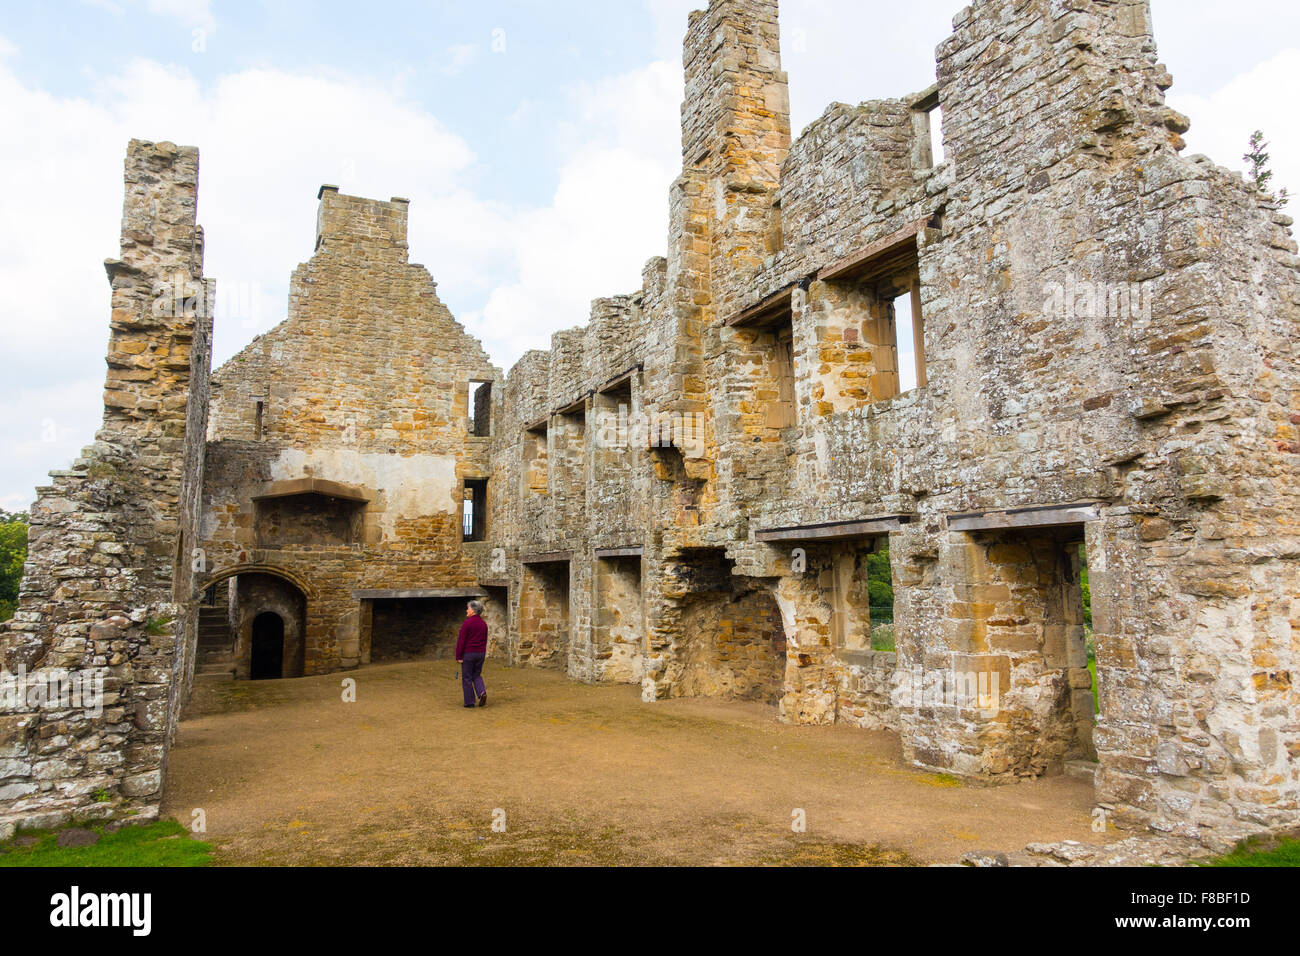 The ruins of 12th century, Premonstratensian, Egglestone Abbey on southern (Yorkshire) bank of River Tees. - Stock Image